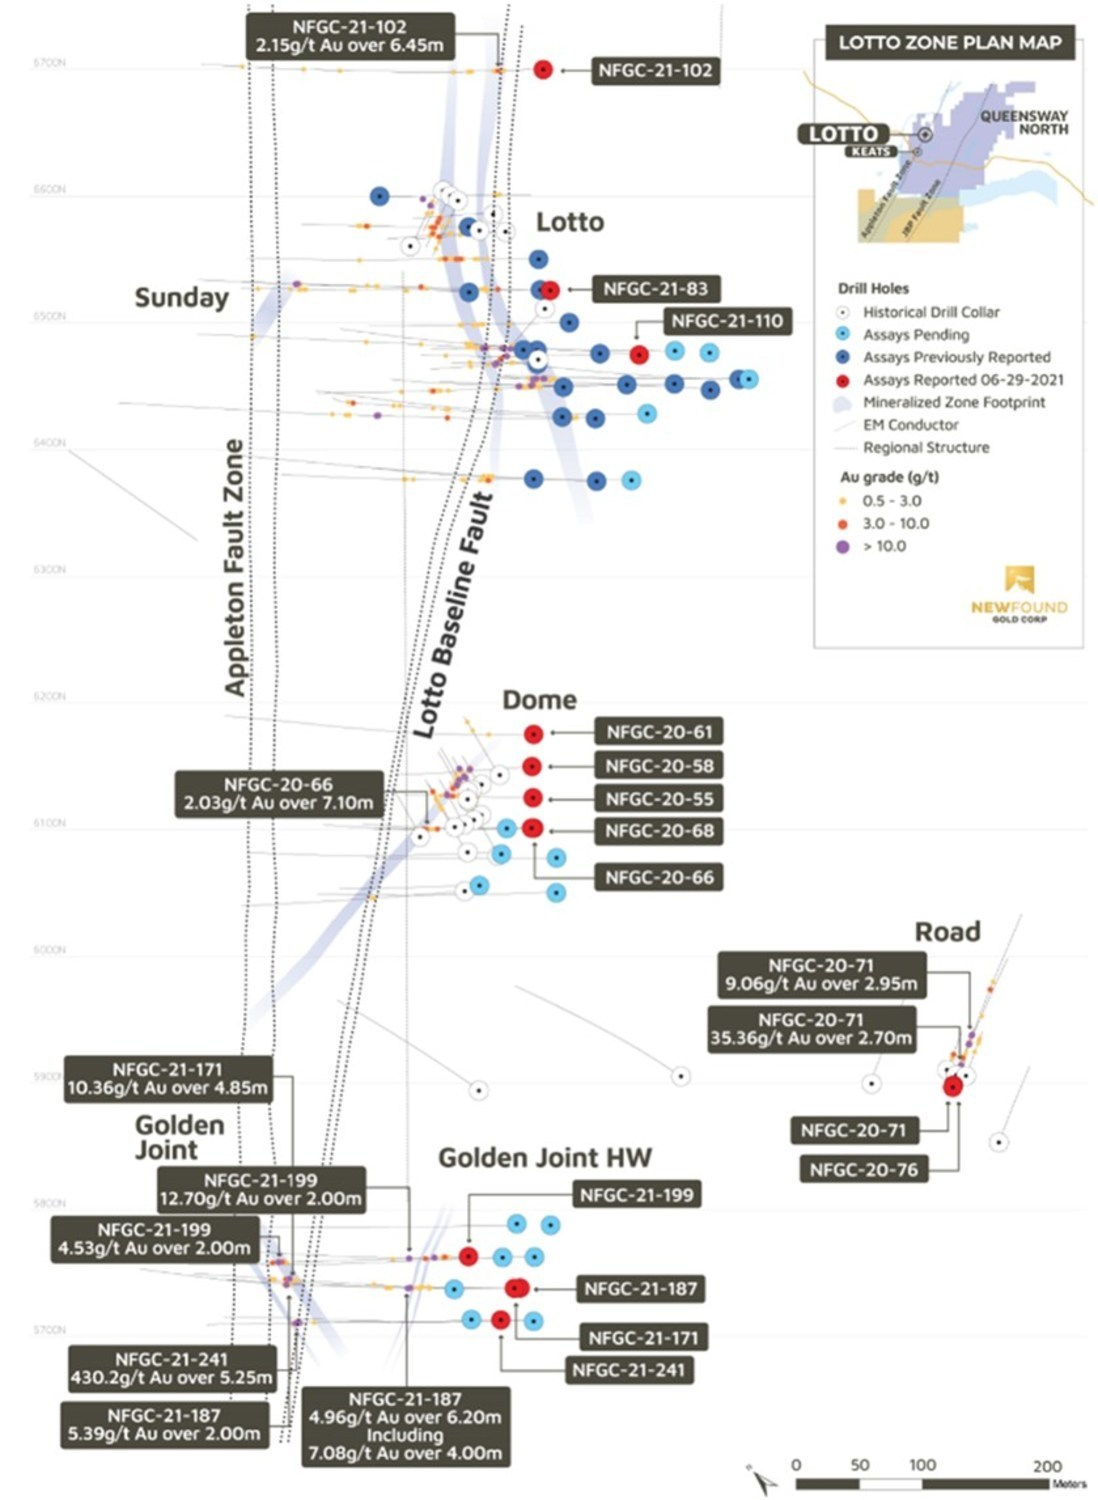 Figure 5. Golden Joint to Lotto Corridor Plan Map (CNW Group/New Found Gold Corp.)